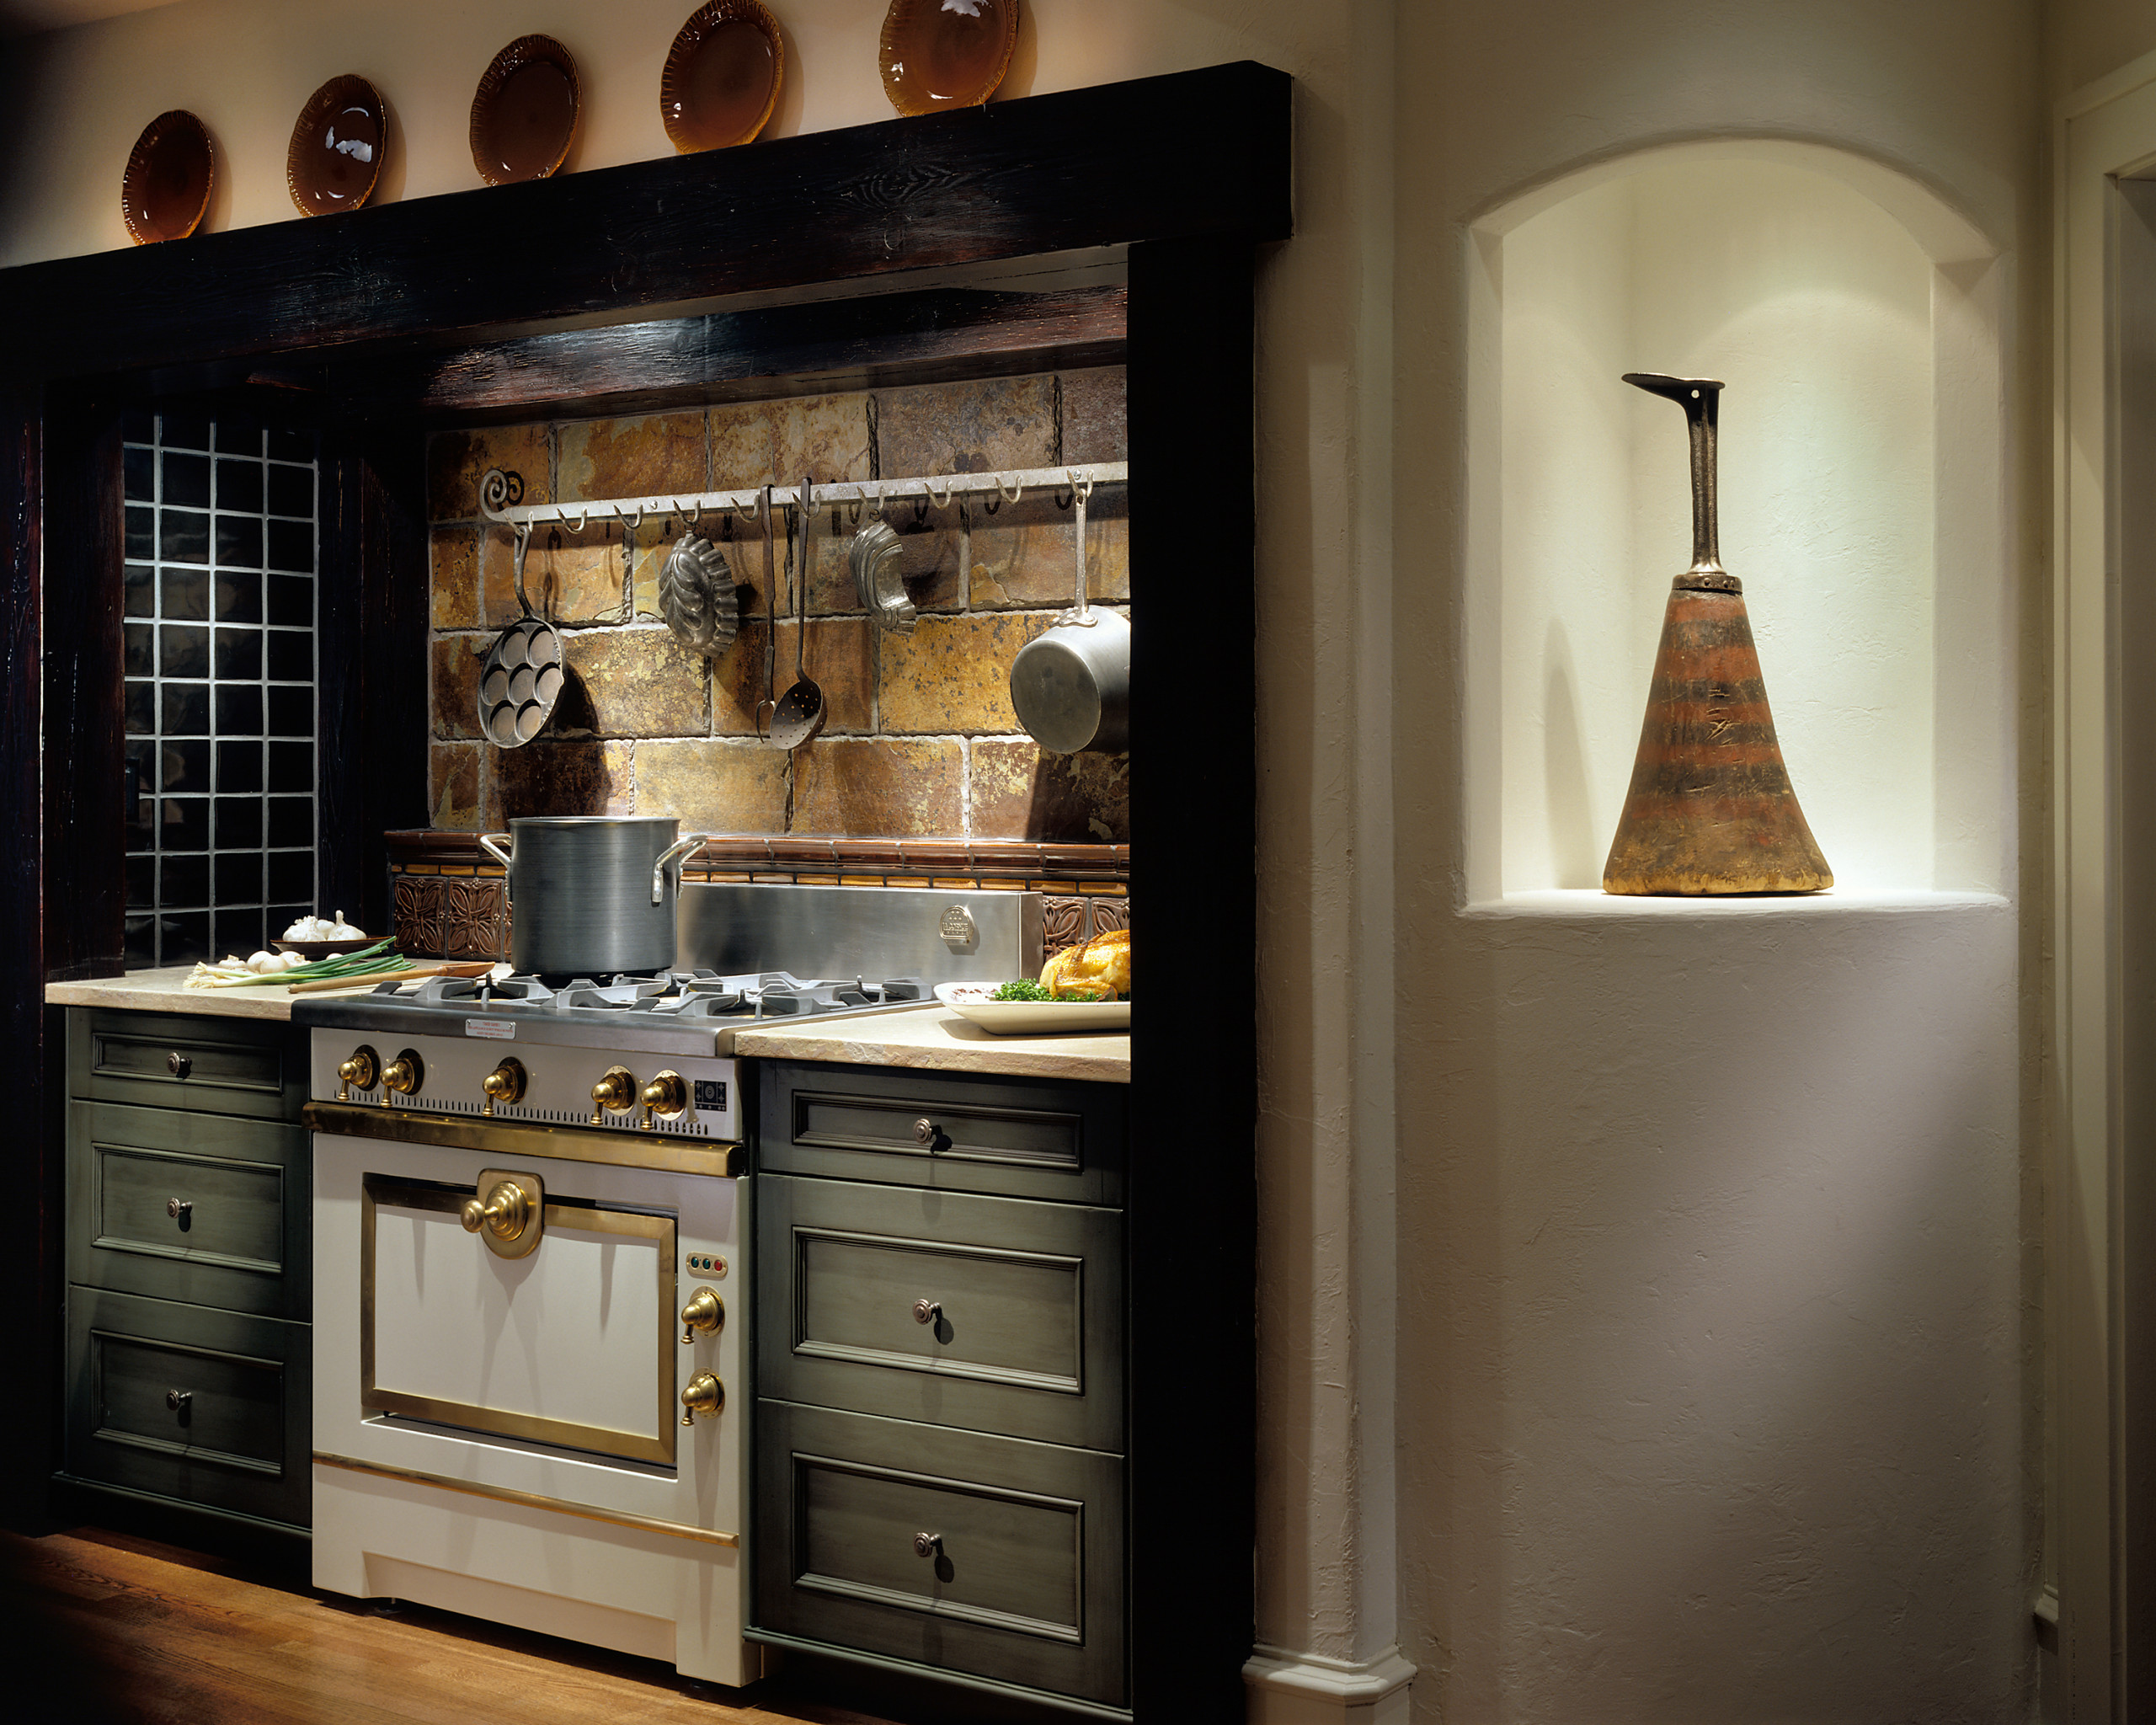 75 Beautiful Rustic Kitchen With Green Cabinets Pictures Ideas December 2020 Houzz